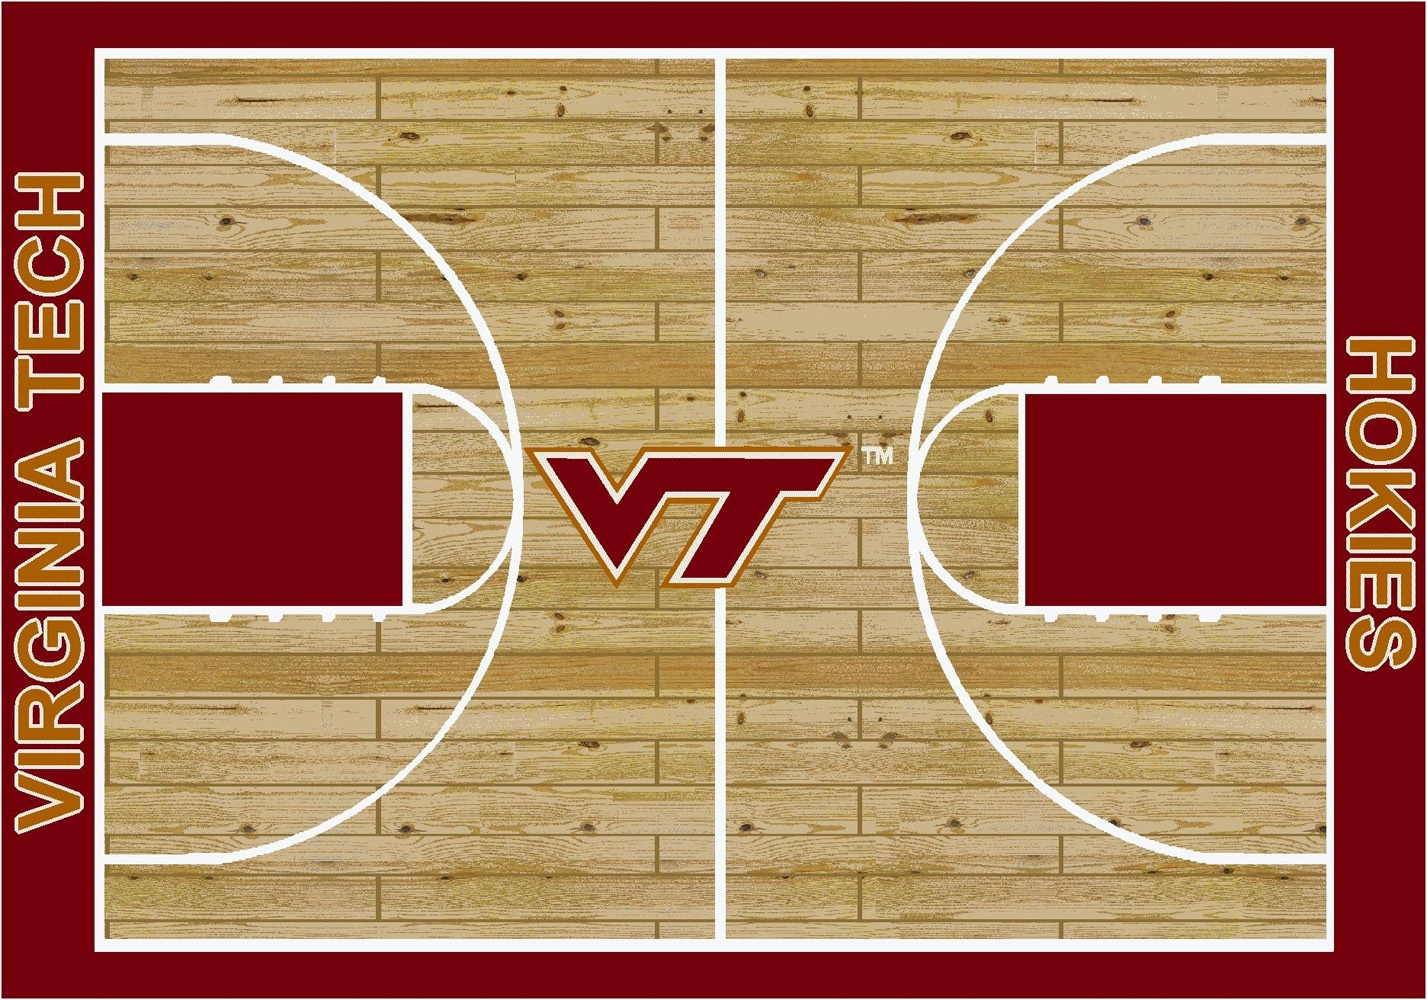 College Basketball Court Virginia Tech 100 Stainmaster